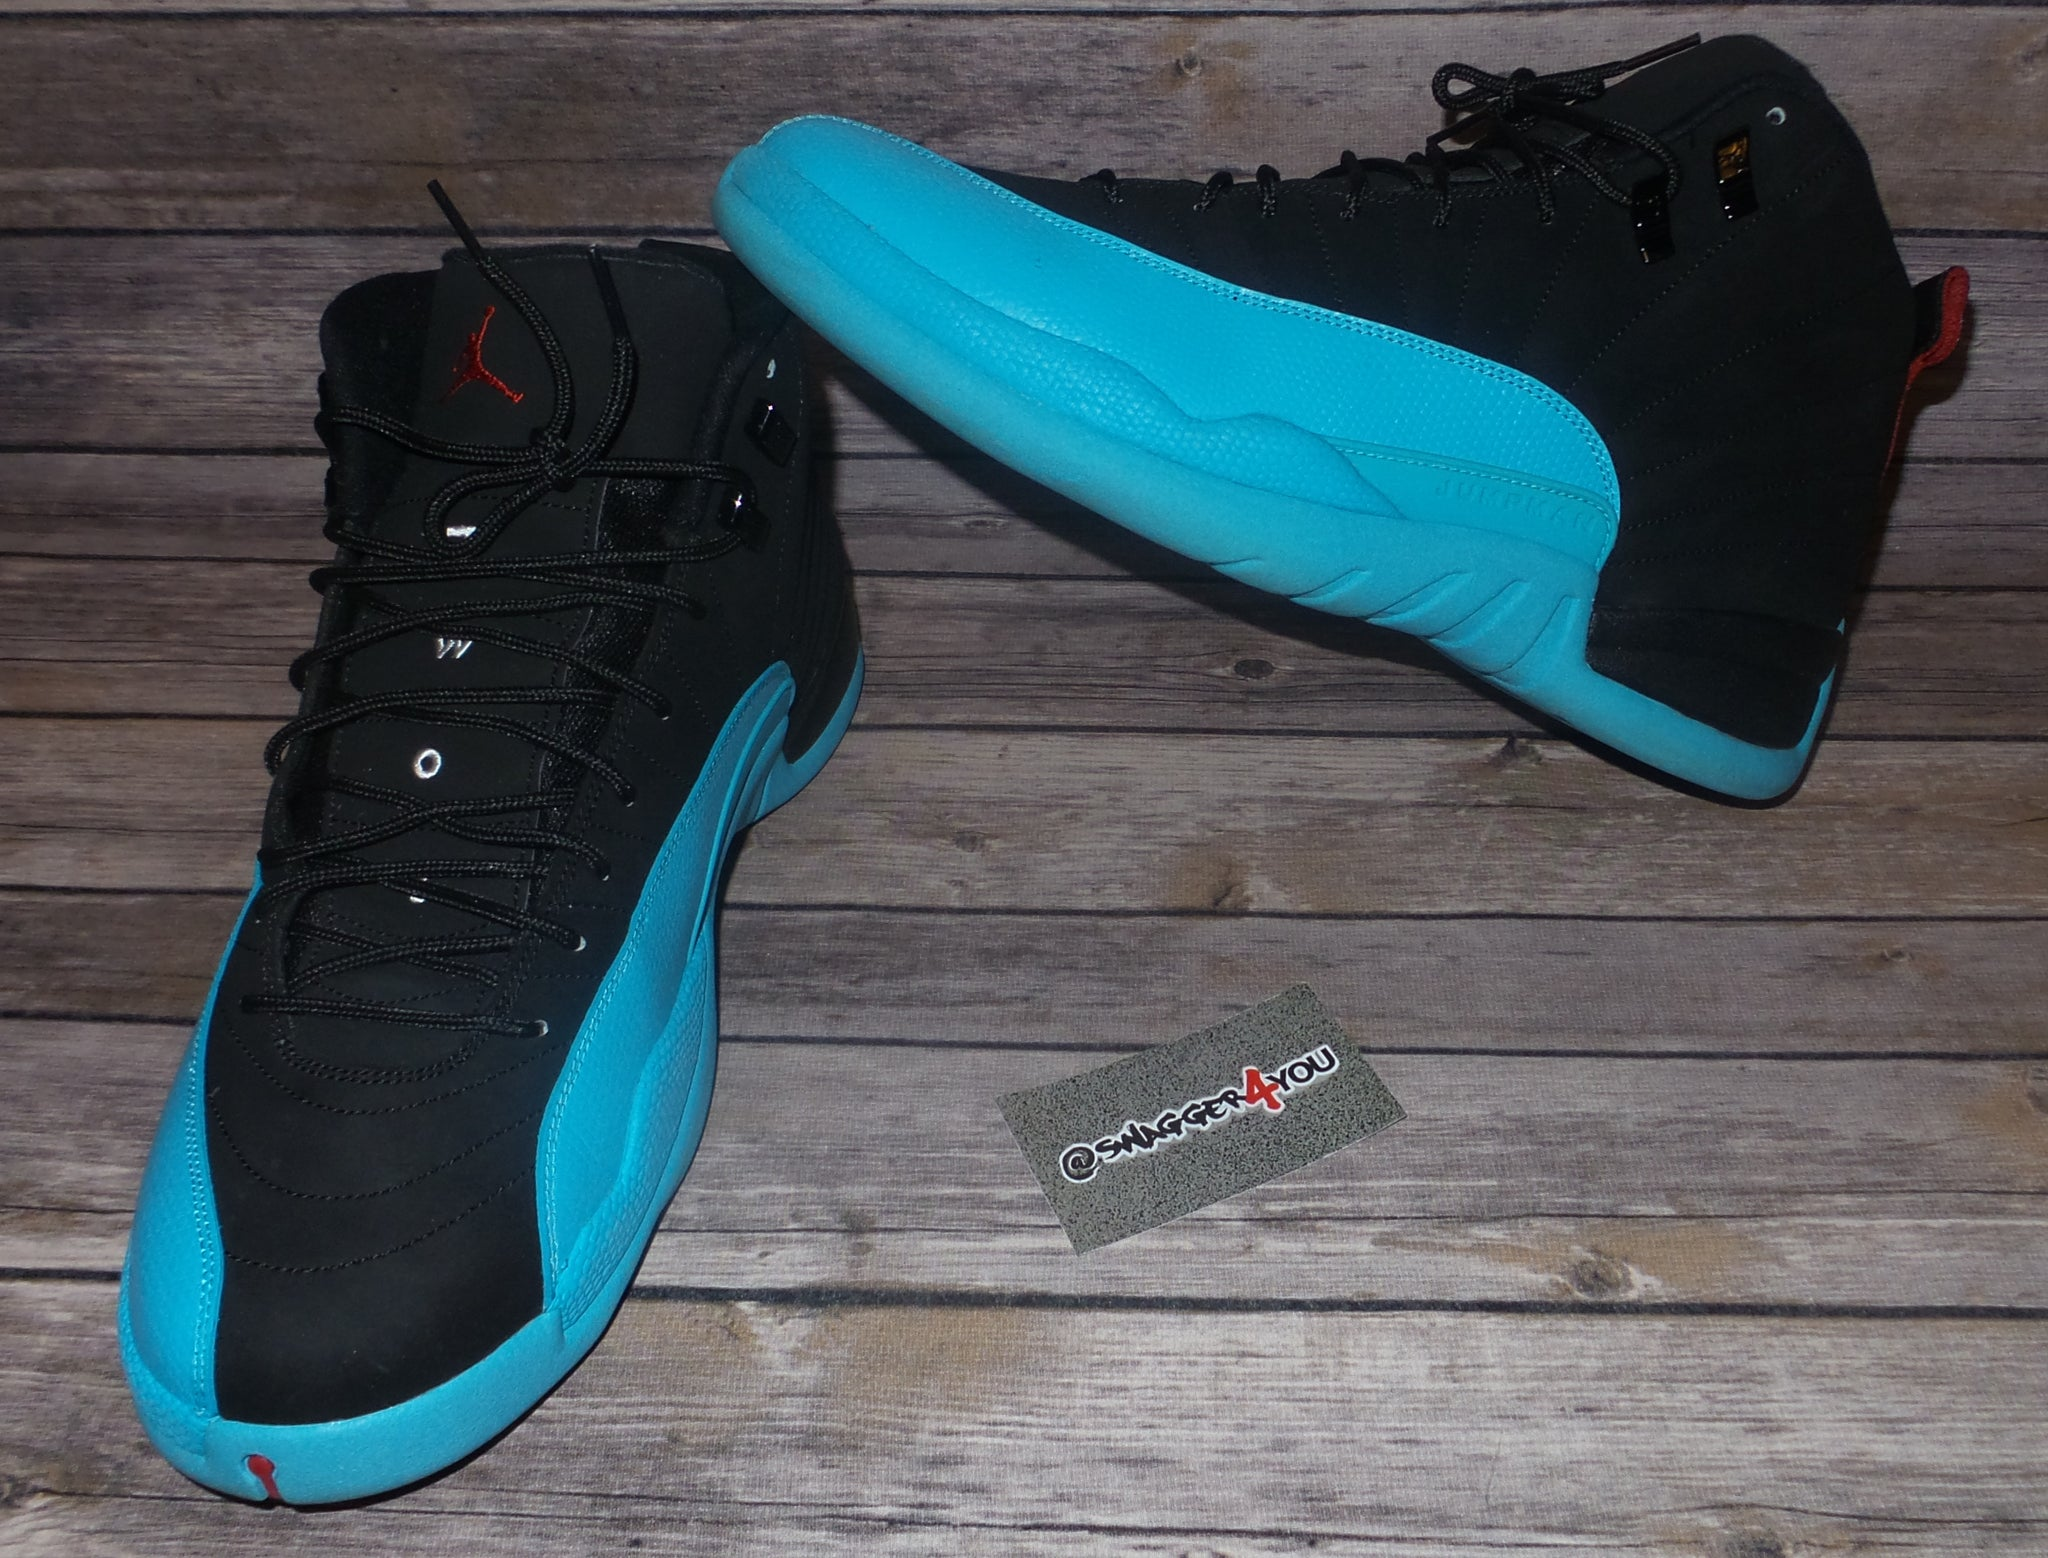 b1430c7574bd Air Jordan 12 Retro  Gamma Blue  - swagger4you